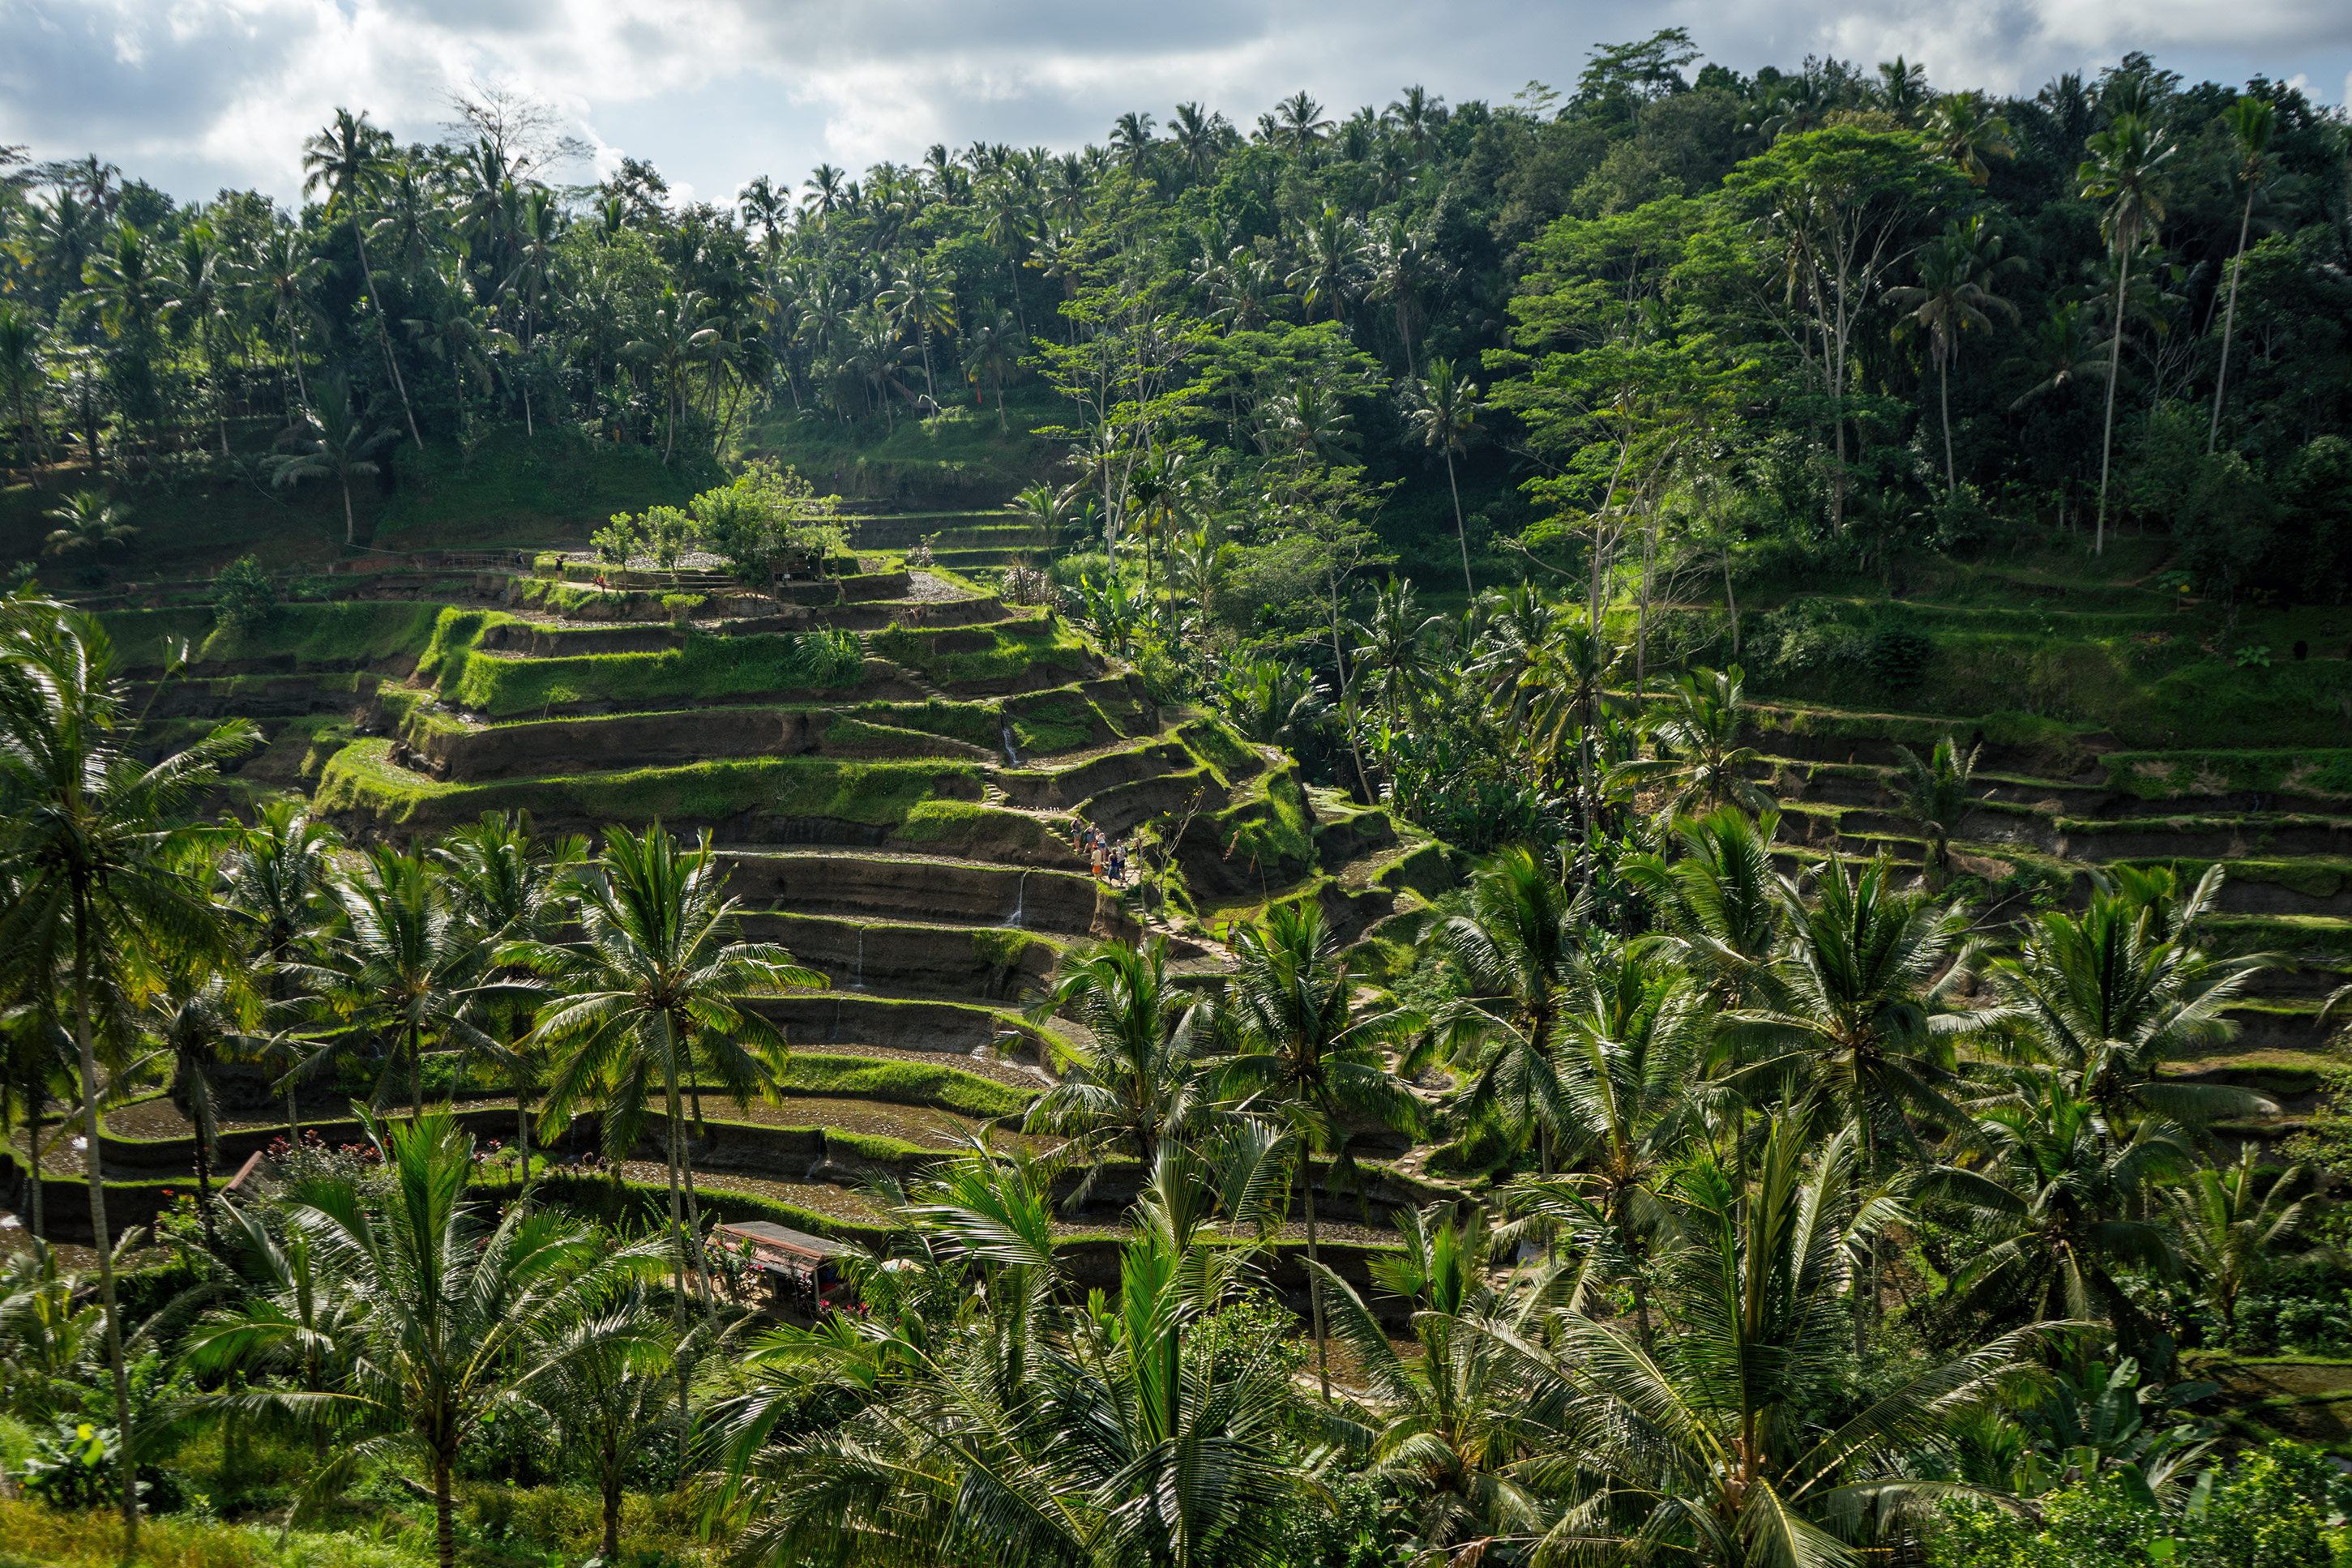 Bali Ubud Tegalalang Rice Terraces View